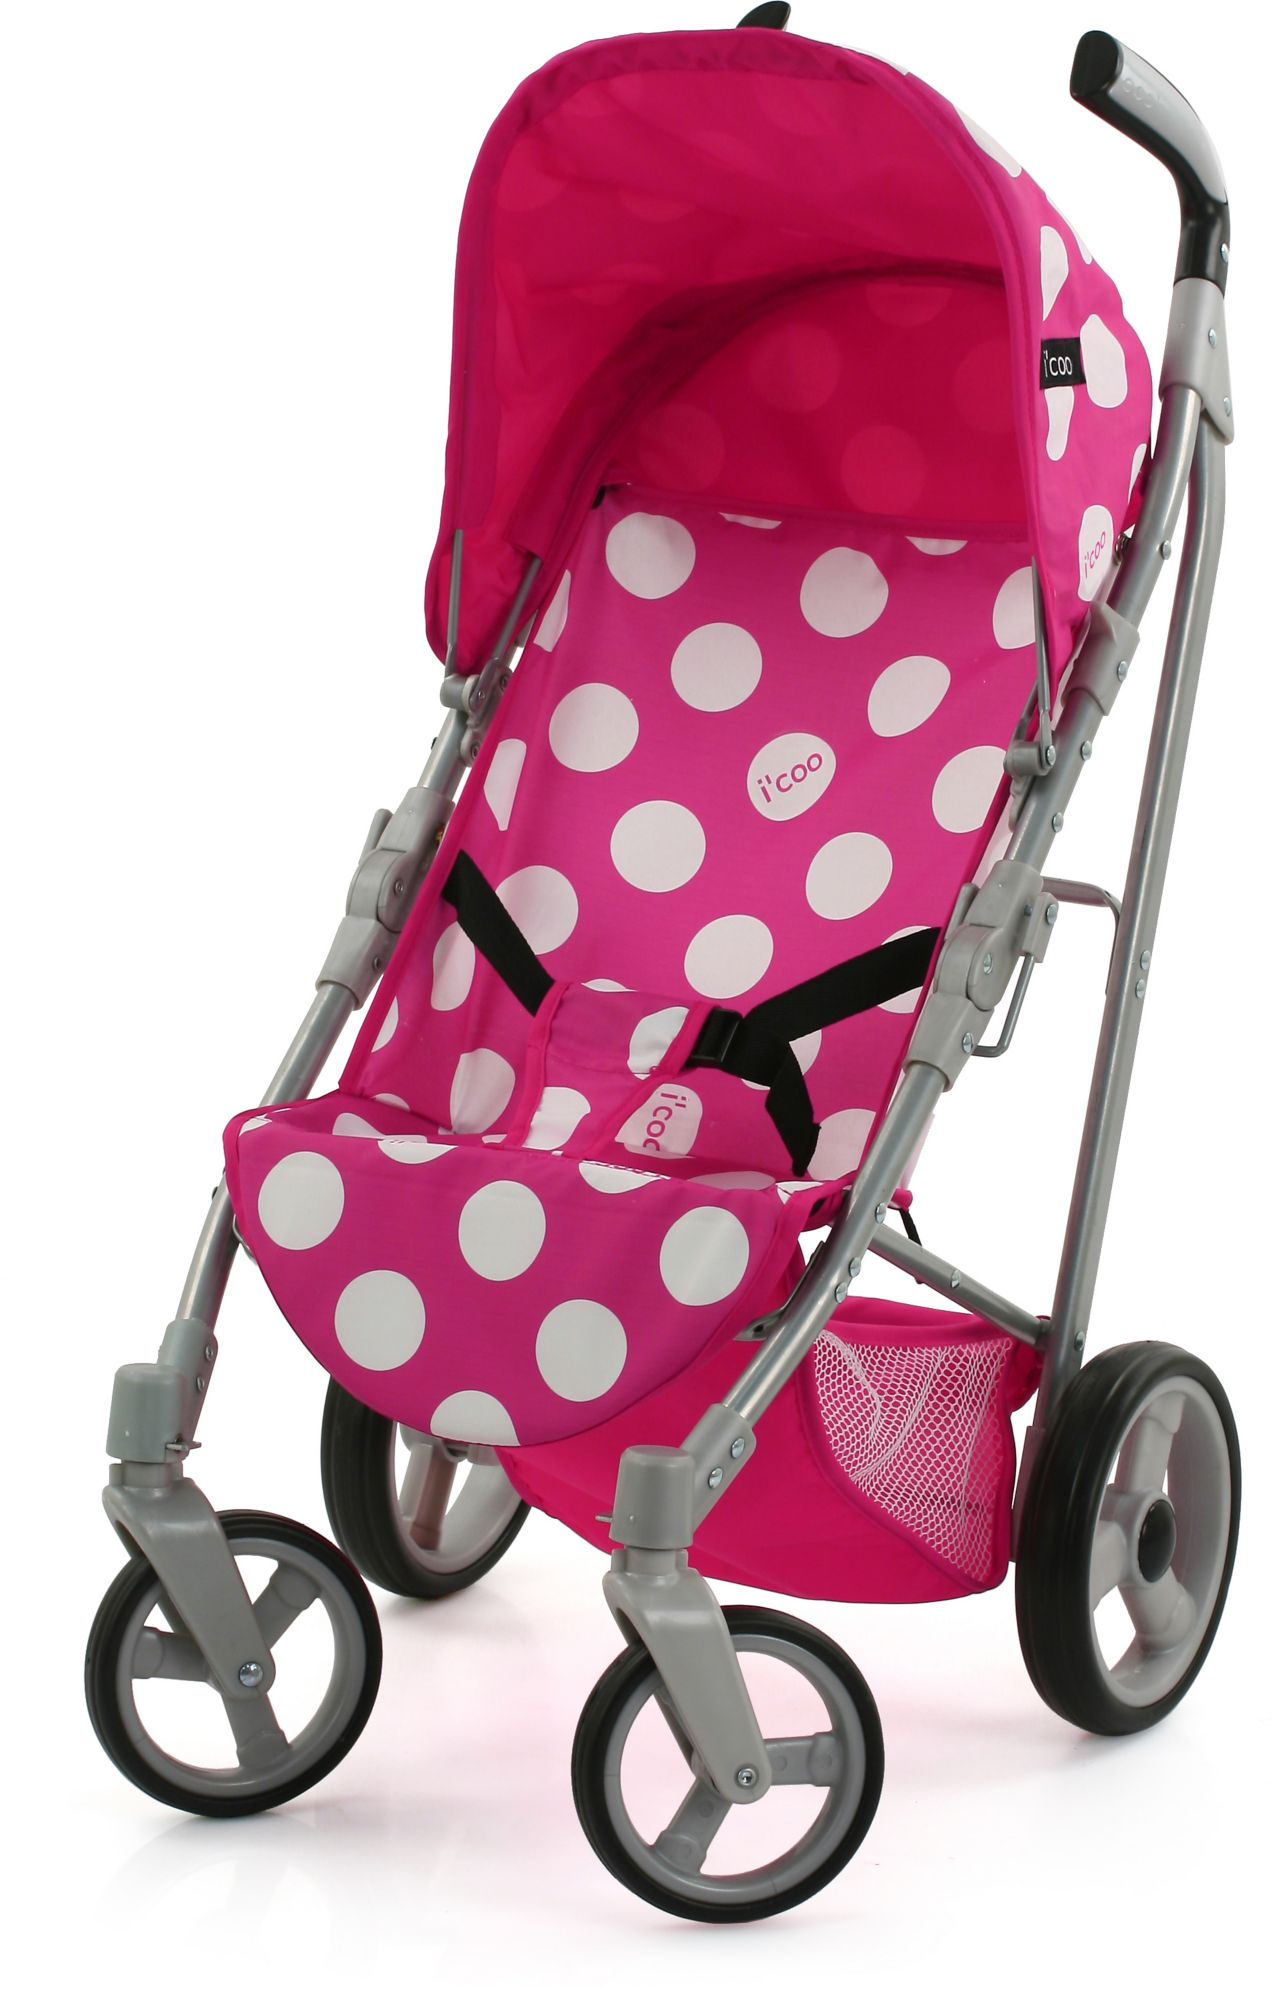 HAUCK TOYS FOR KIDS hauck TOYS FOR KIDS Puppenbuggy, »i'coo Pluto, Dotty Pink«